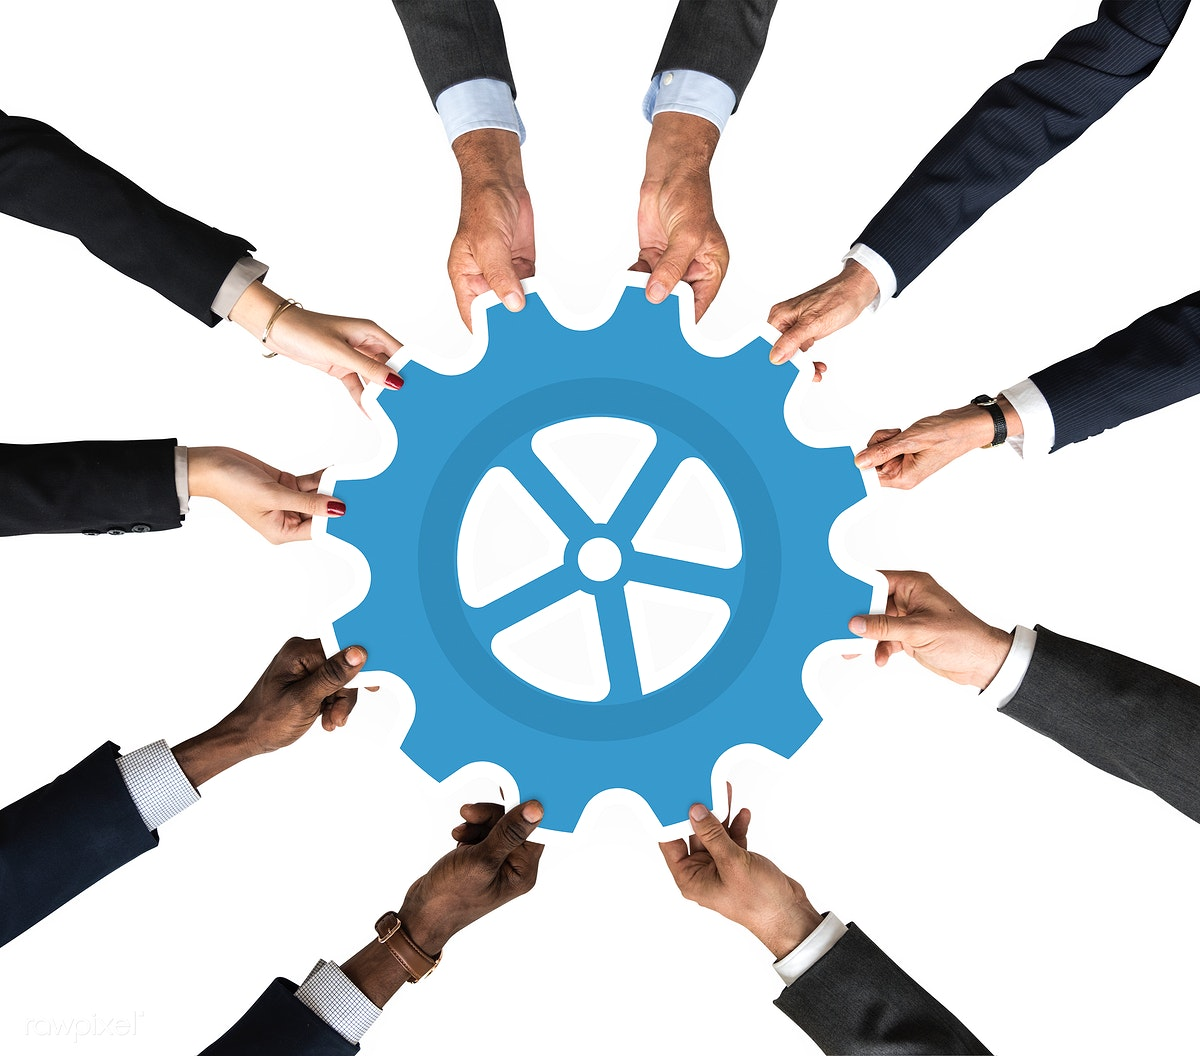 Download premium image of Hand holding a cog icon clipart 536719